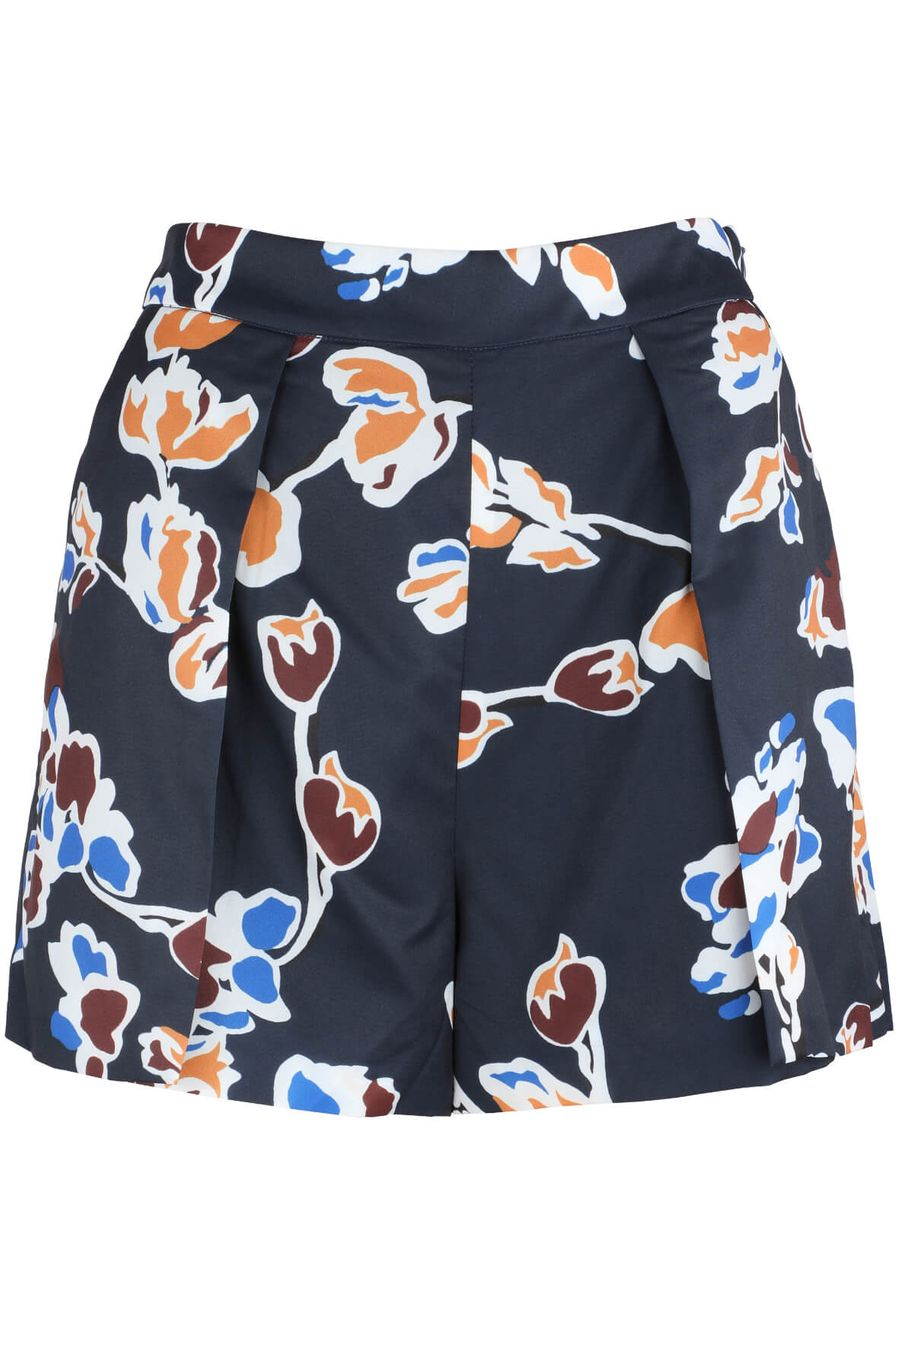 lavish-alice-floral-tailored-shorts-1